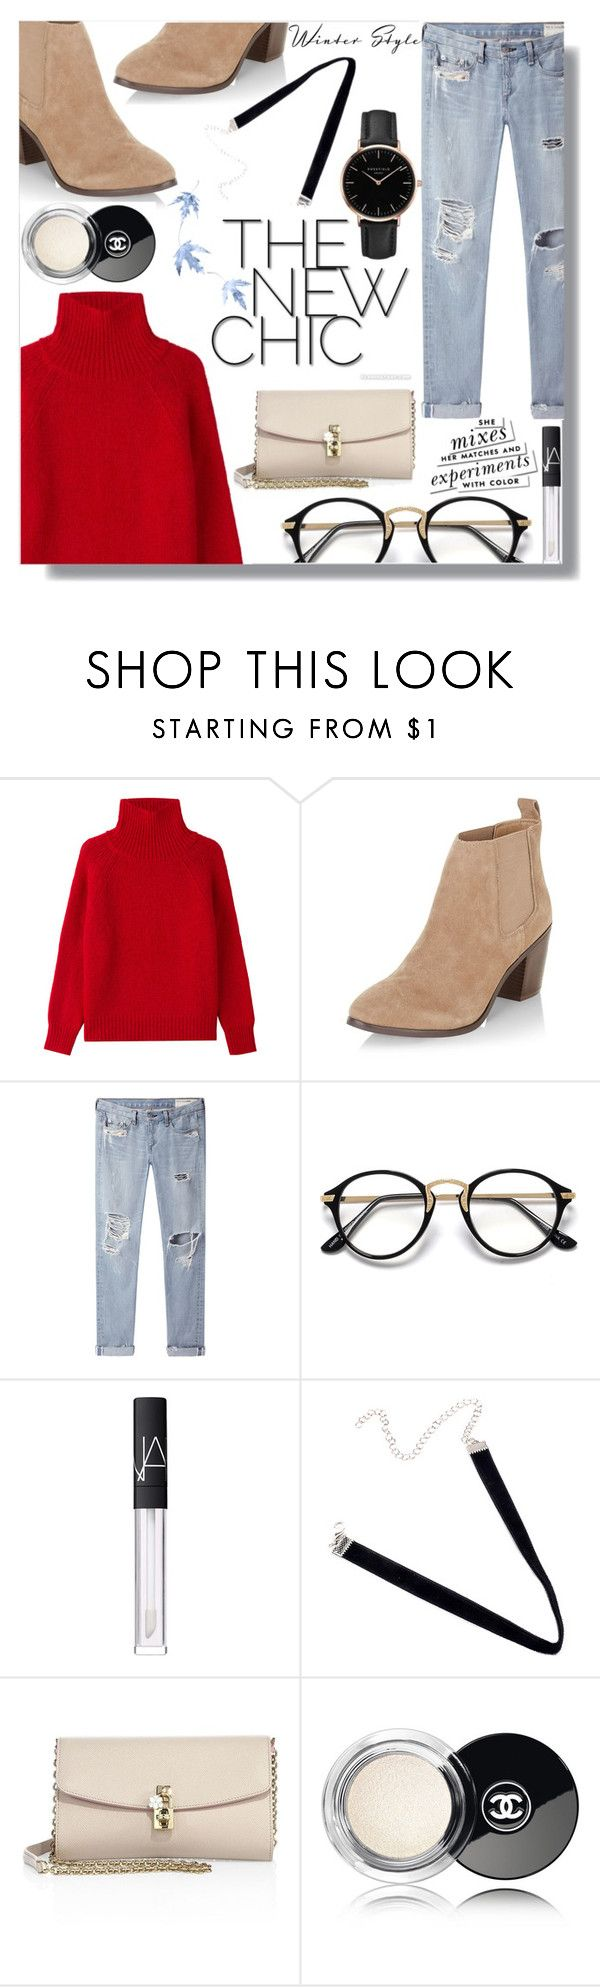 """""""Red Sweater"""" by loloksage on Polyvore featuring Vanessa Bruno, New Look, rag & bone/JEAN, NARS Cosmetics, Dolce&Gabbana, Kate Spade, Chanel and Topshop"""